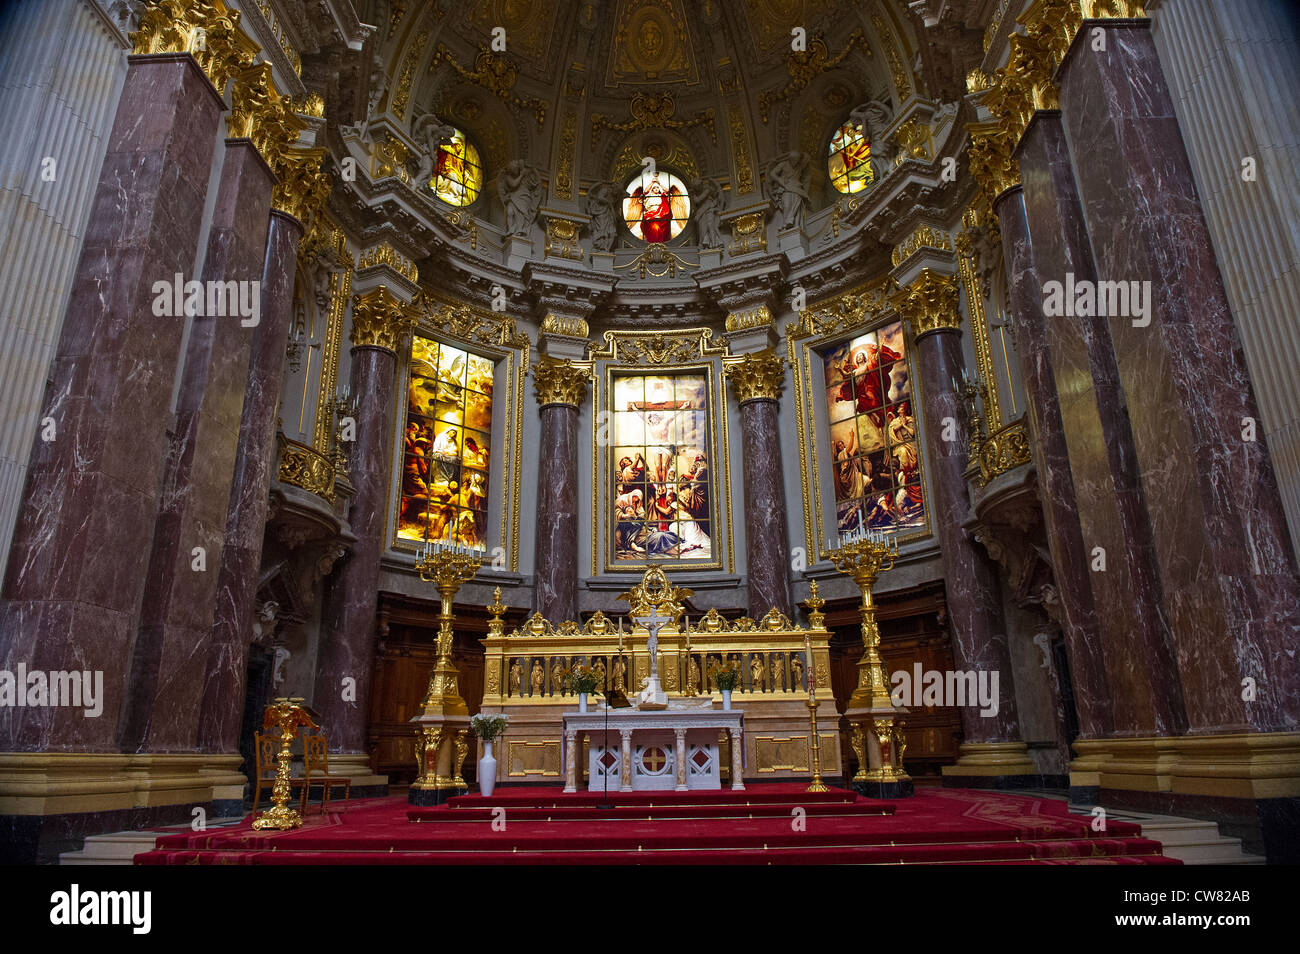 The interior of the Berlin Cathedral - Stock Image